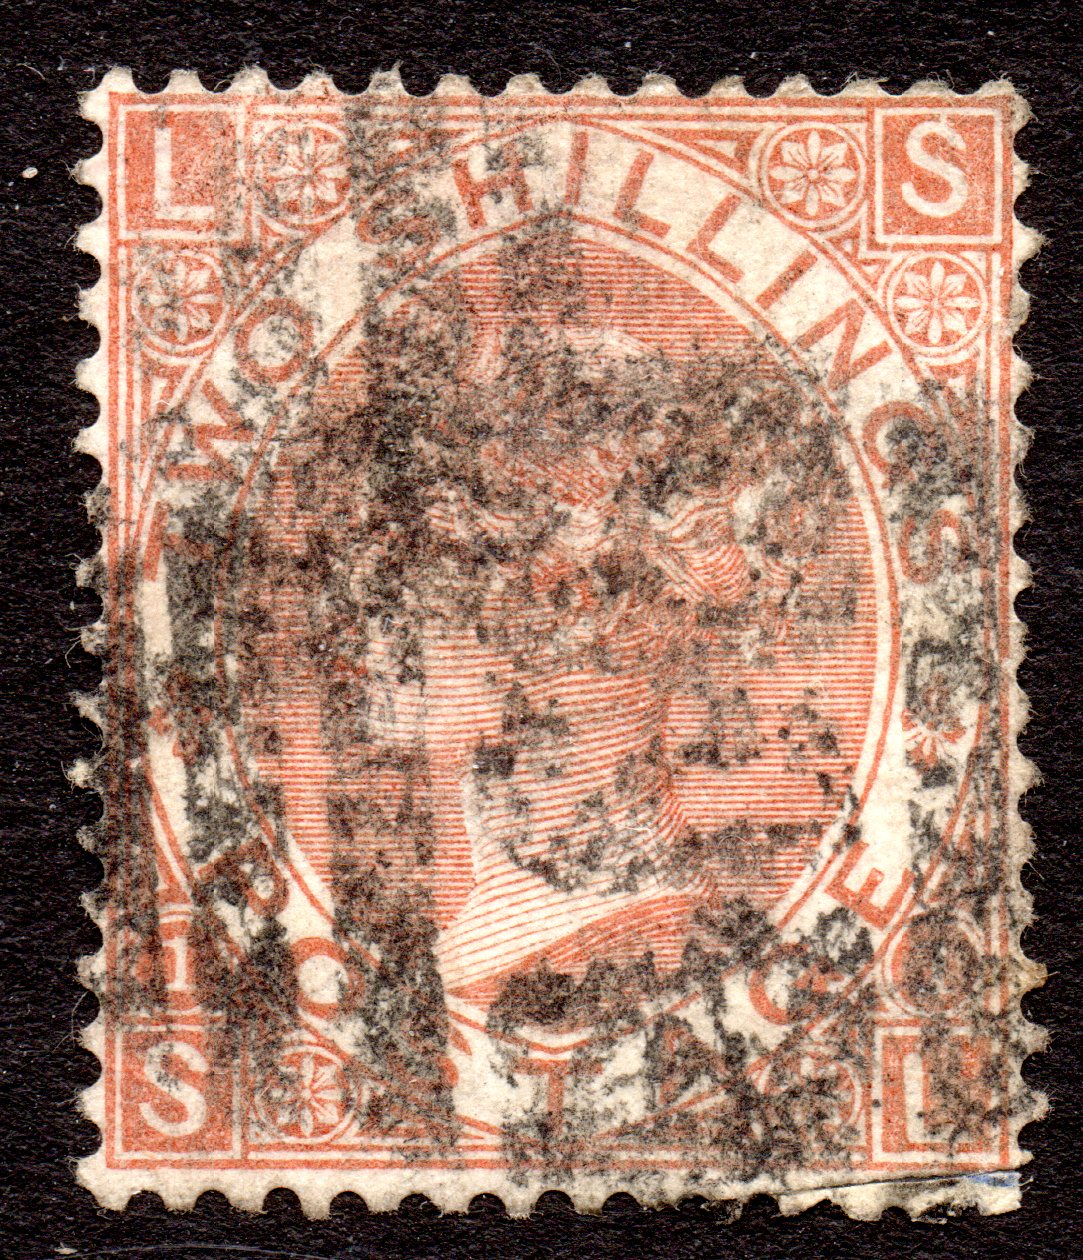 QV 2s Brown with Excellent Deep Colour Improved Perfs SE - Scarce Stamp SG121 - SOLD